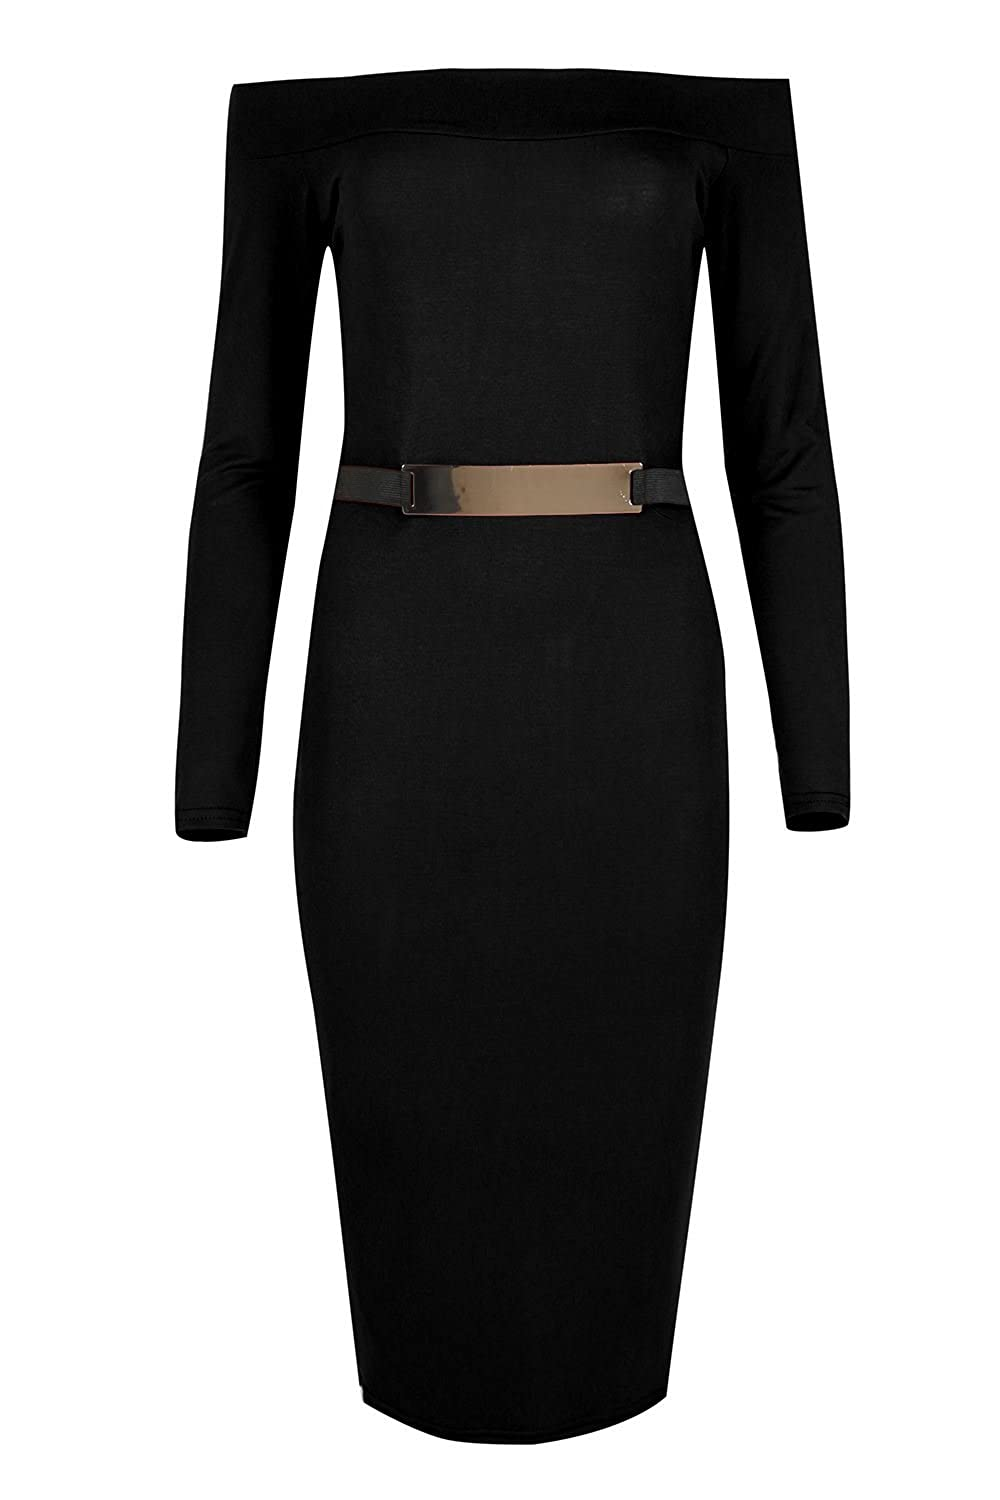 Oops Outlet Women's Off The Shoulder Gold Belted Stretchy Bodycon Midi Dress